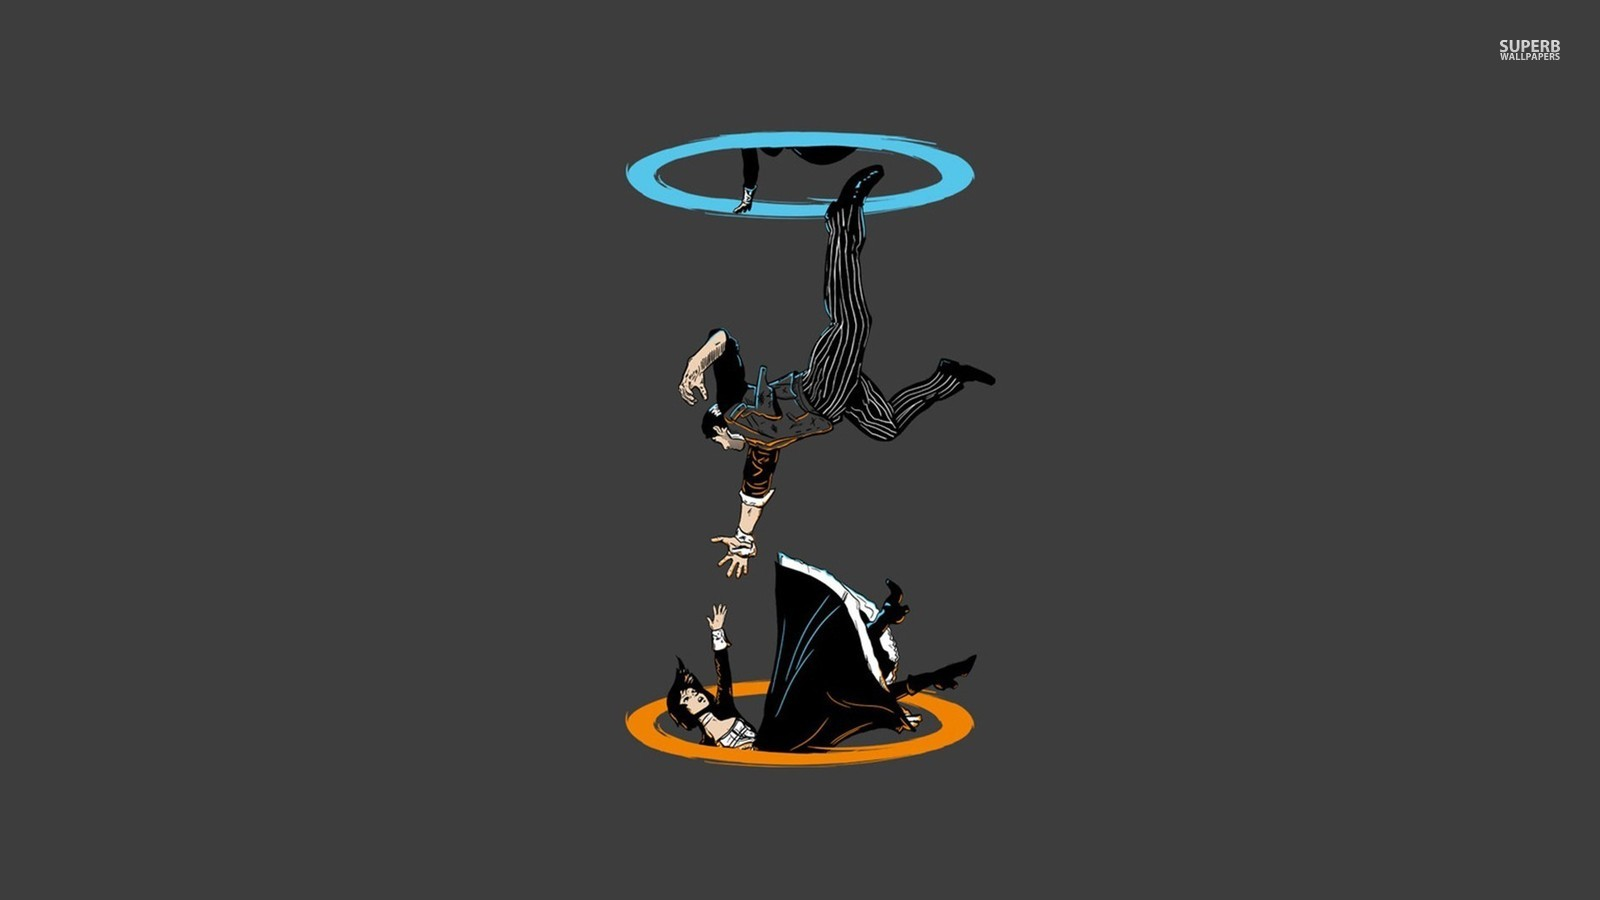 Portal The Game Images Portal Hd Wallpaper And Background Photos